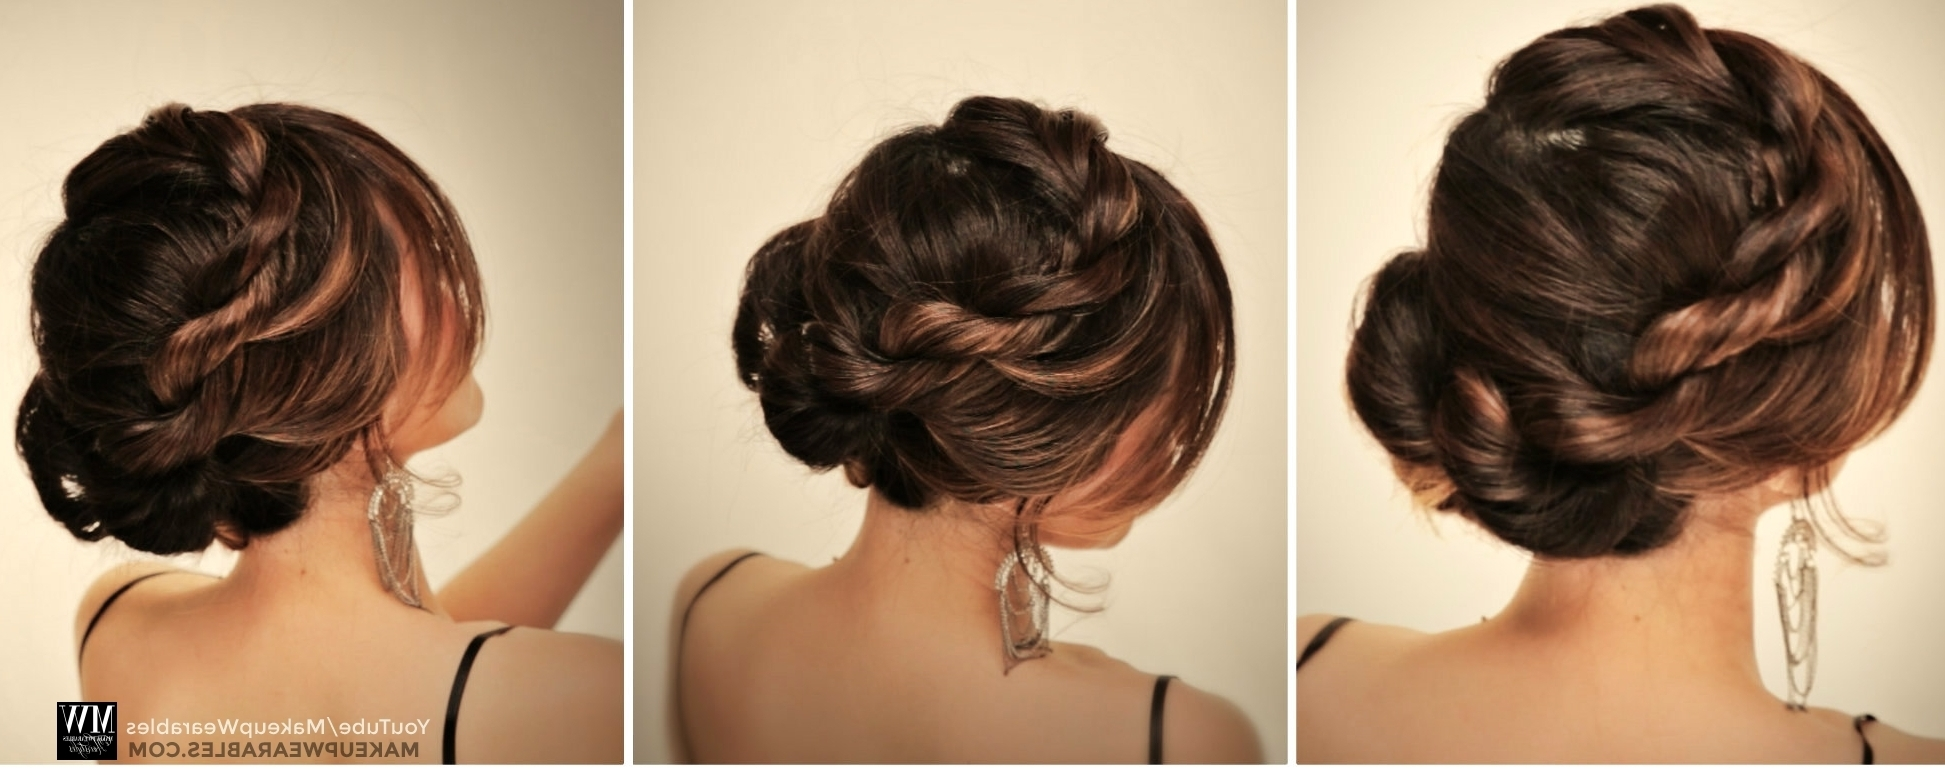 How To: 5 Amazingly Cute + Easy Hairstyles With A Simple Twist Inside Easy Bun Updo Hairstyles For Medium Hair (View 13 of 15)